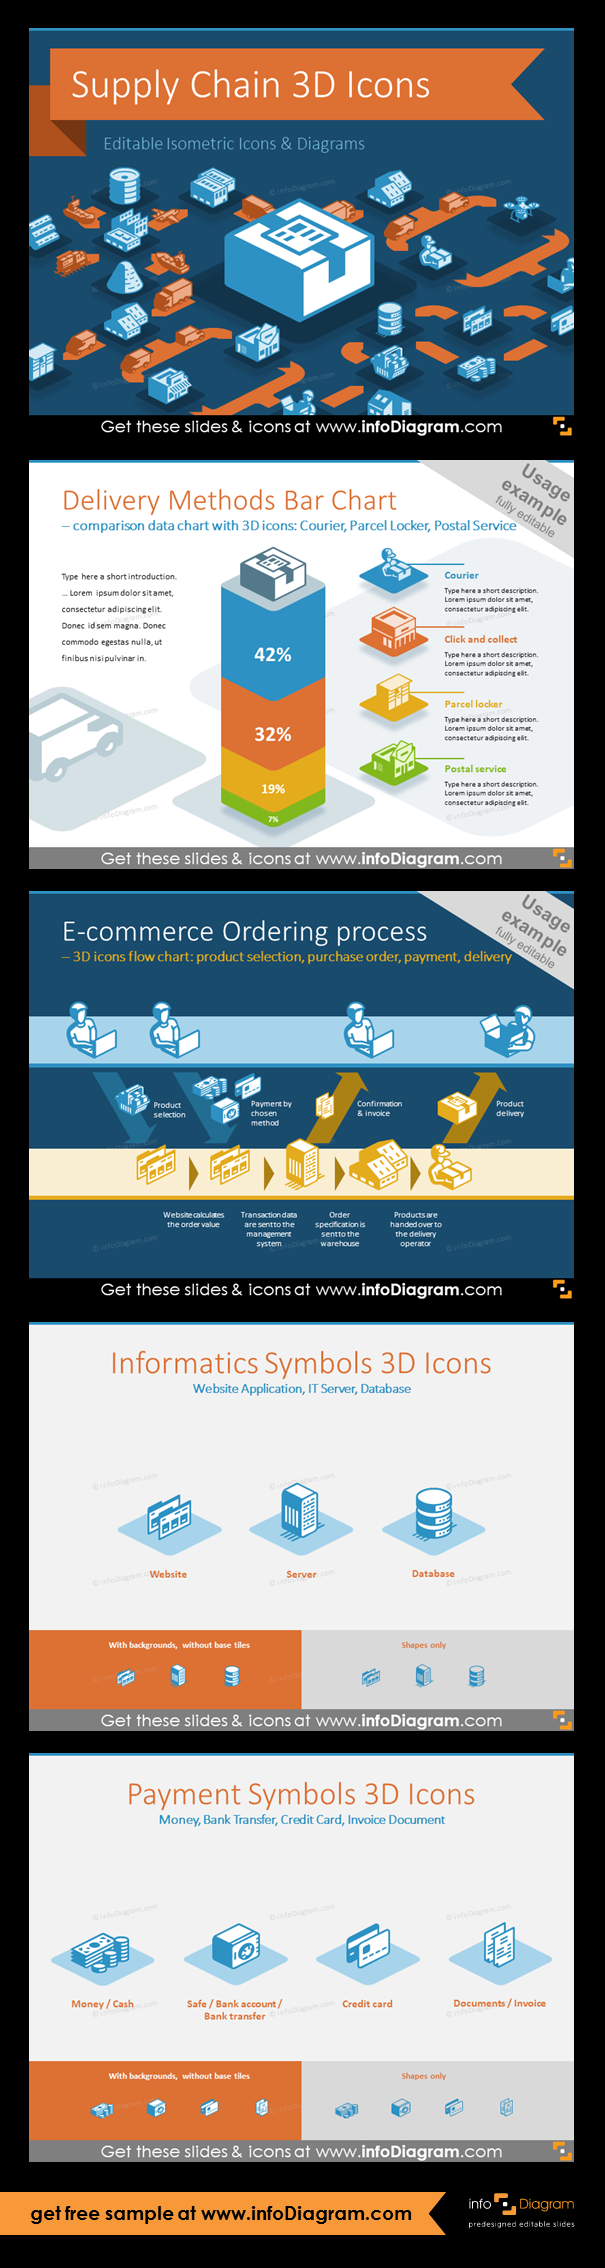 medium resolution of delivery methods bar chart comparison data chart with 3d icons courier parcel locker postal service e commerce ordering process 3d icons flow